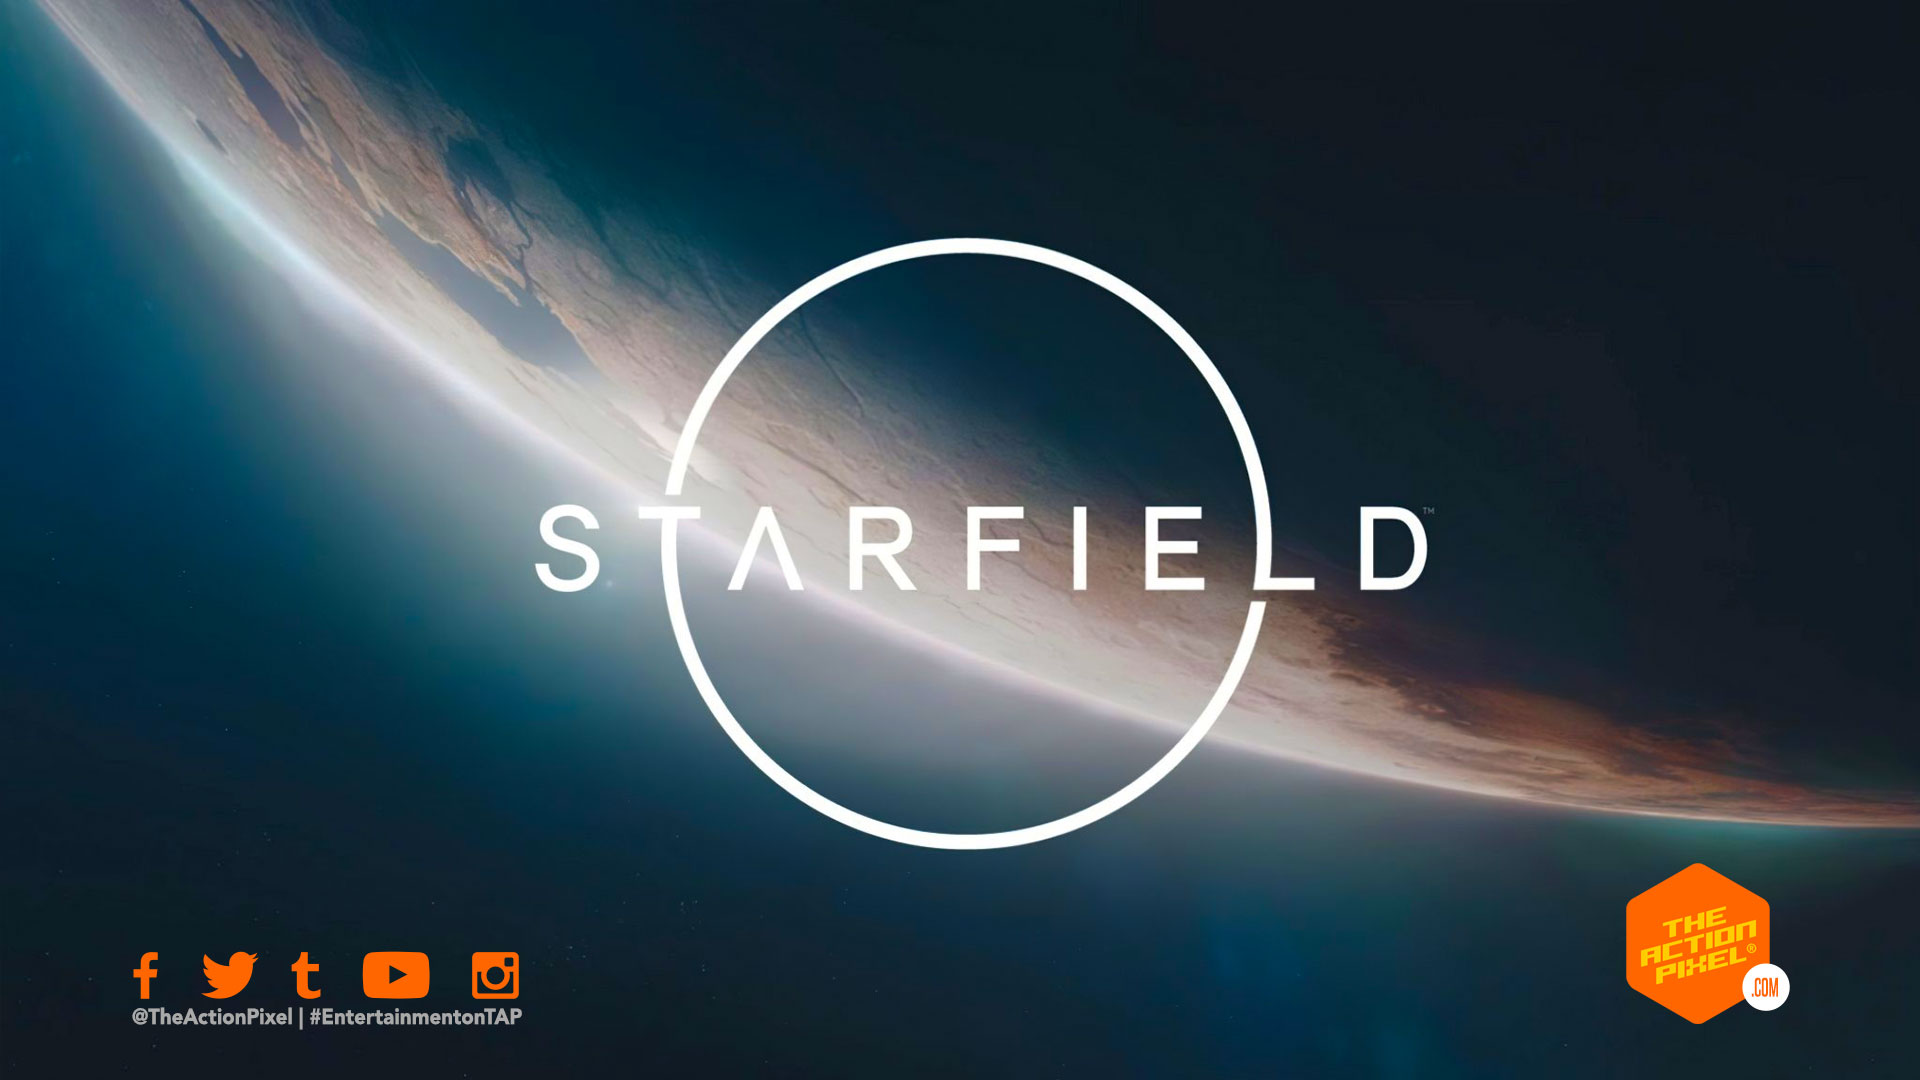 starfield, bethesda, xbox, xbox games, xbox exclusive, microsoft,featured, the action pixel